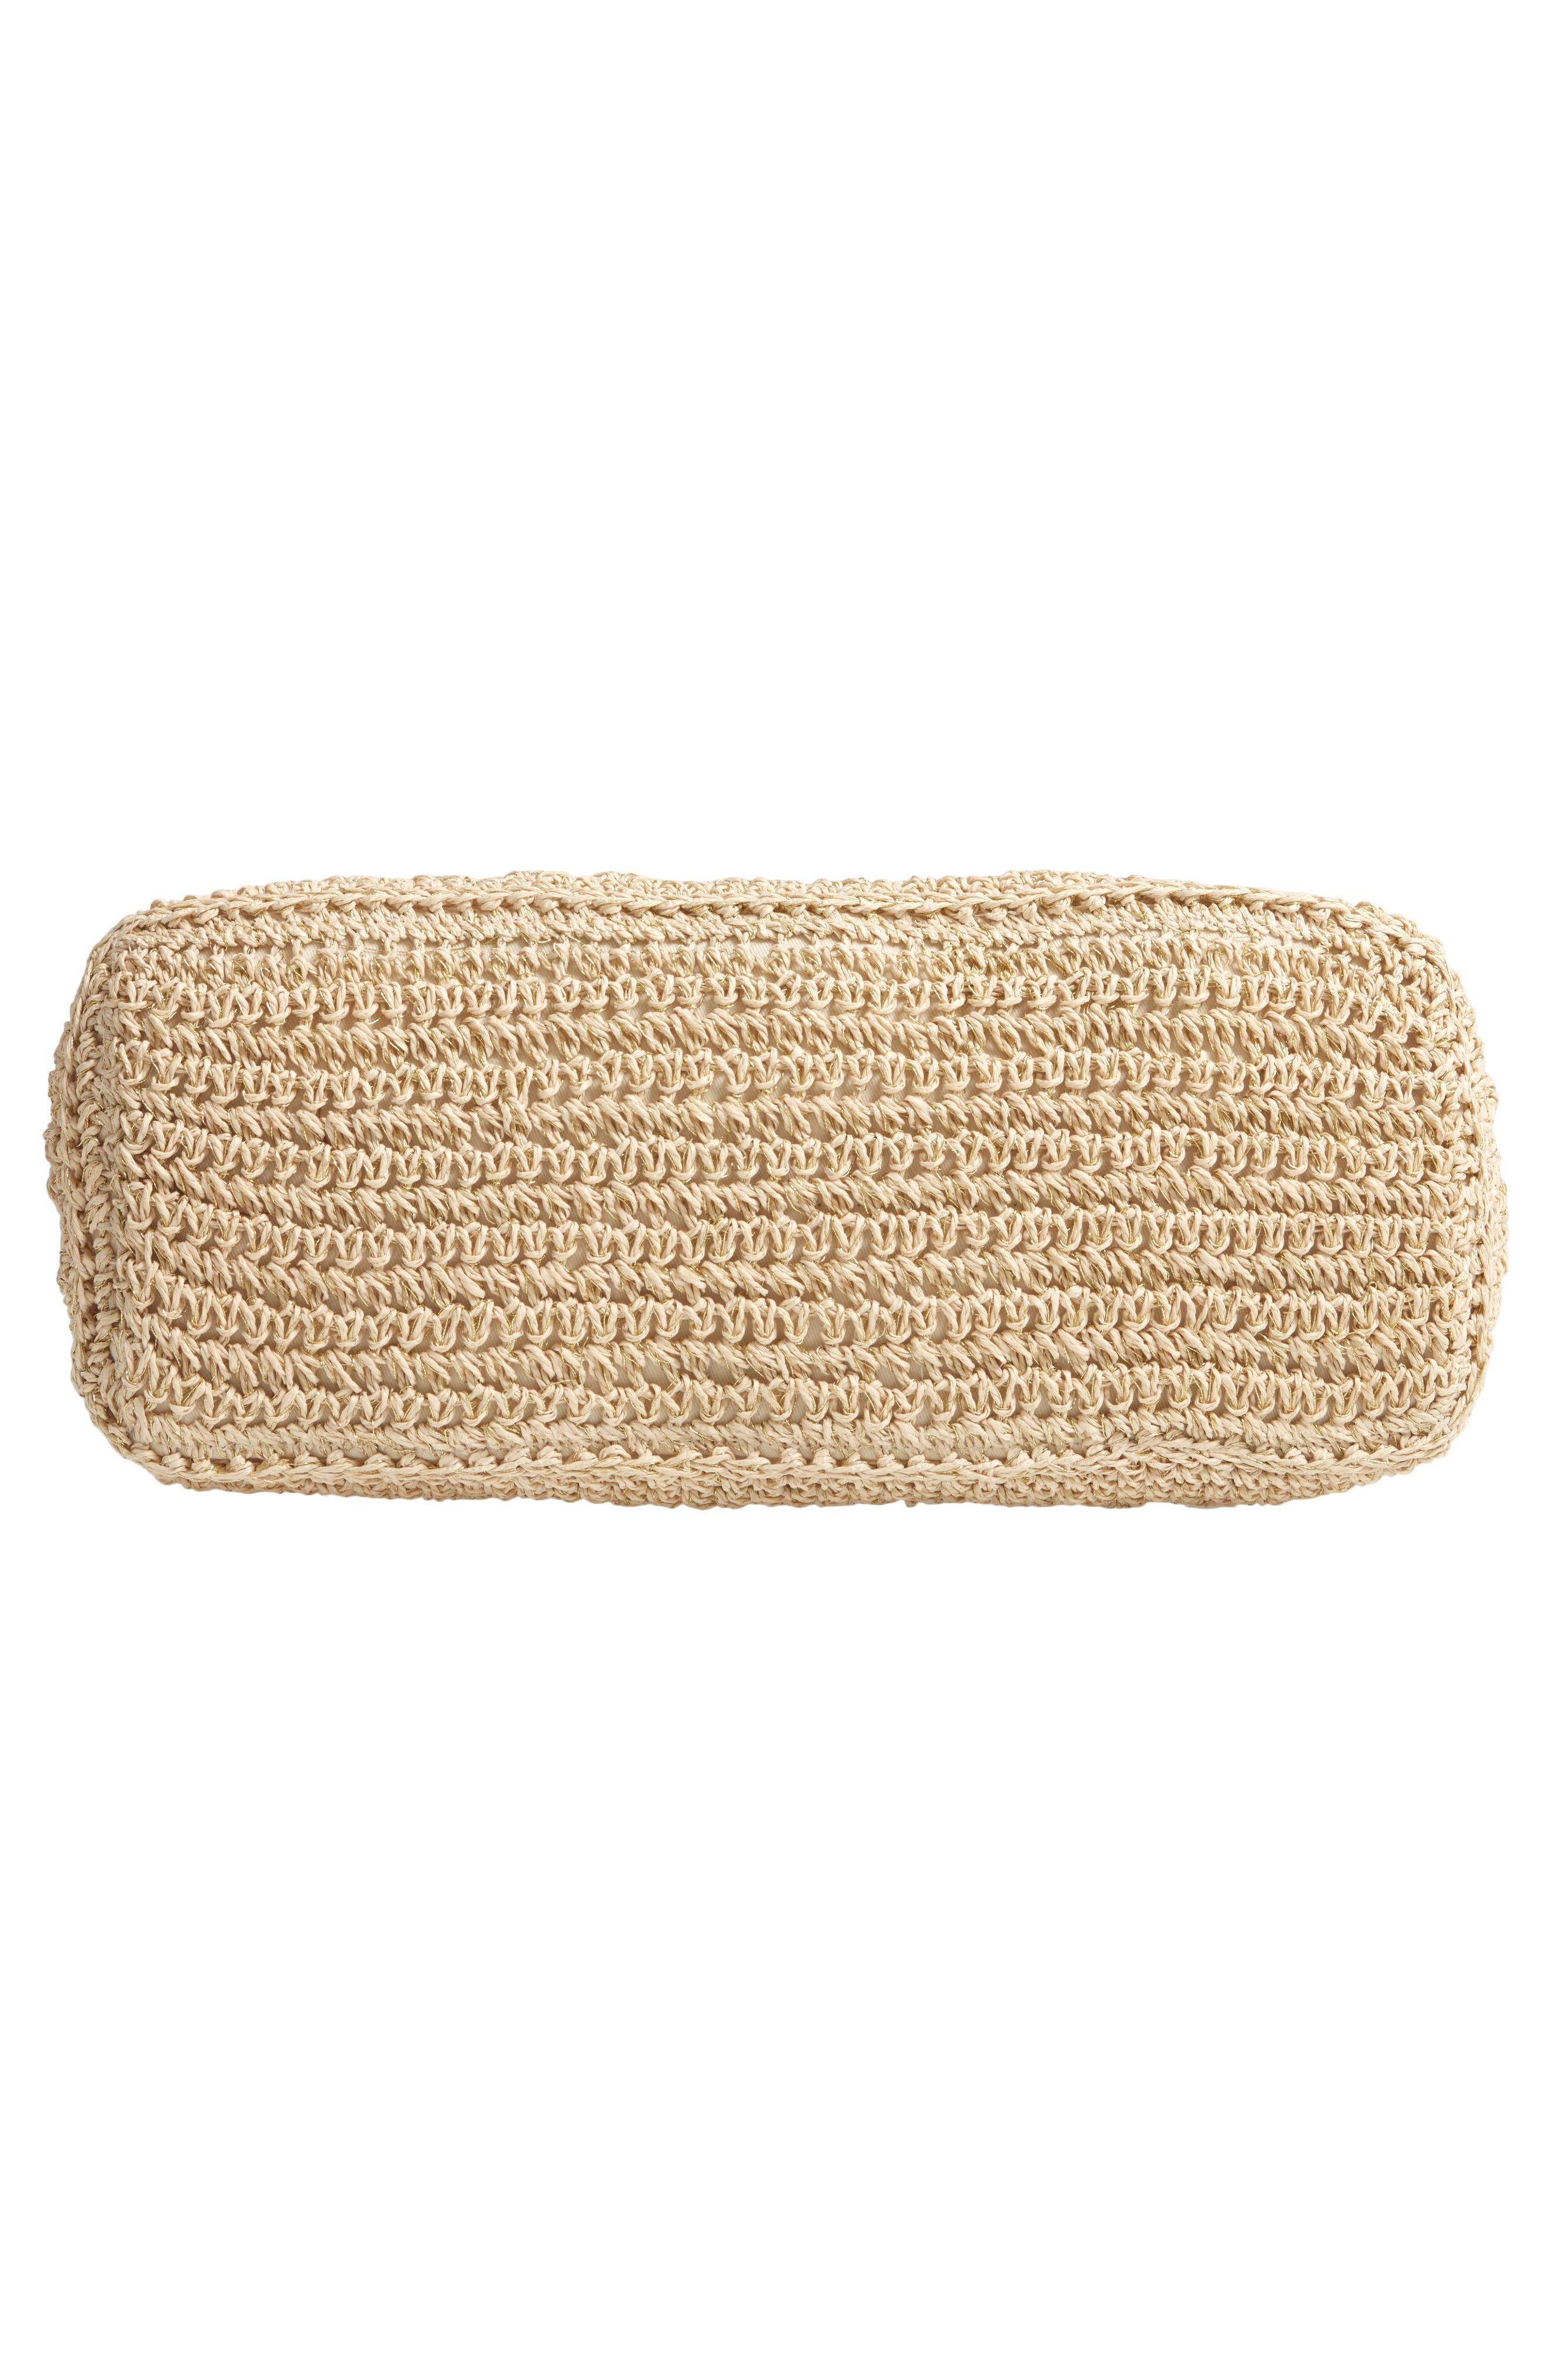 NORDSTROM, Packable Woven Raffia Tote, Alternate thumbnail 7, color, NATURAL